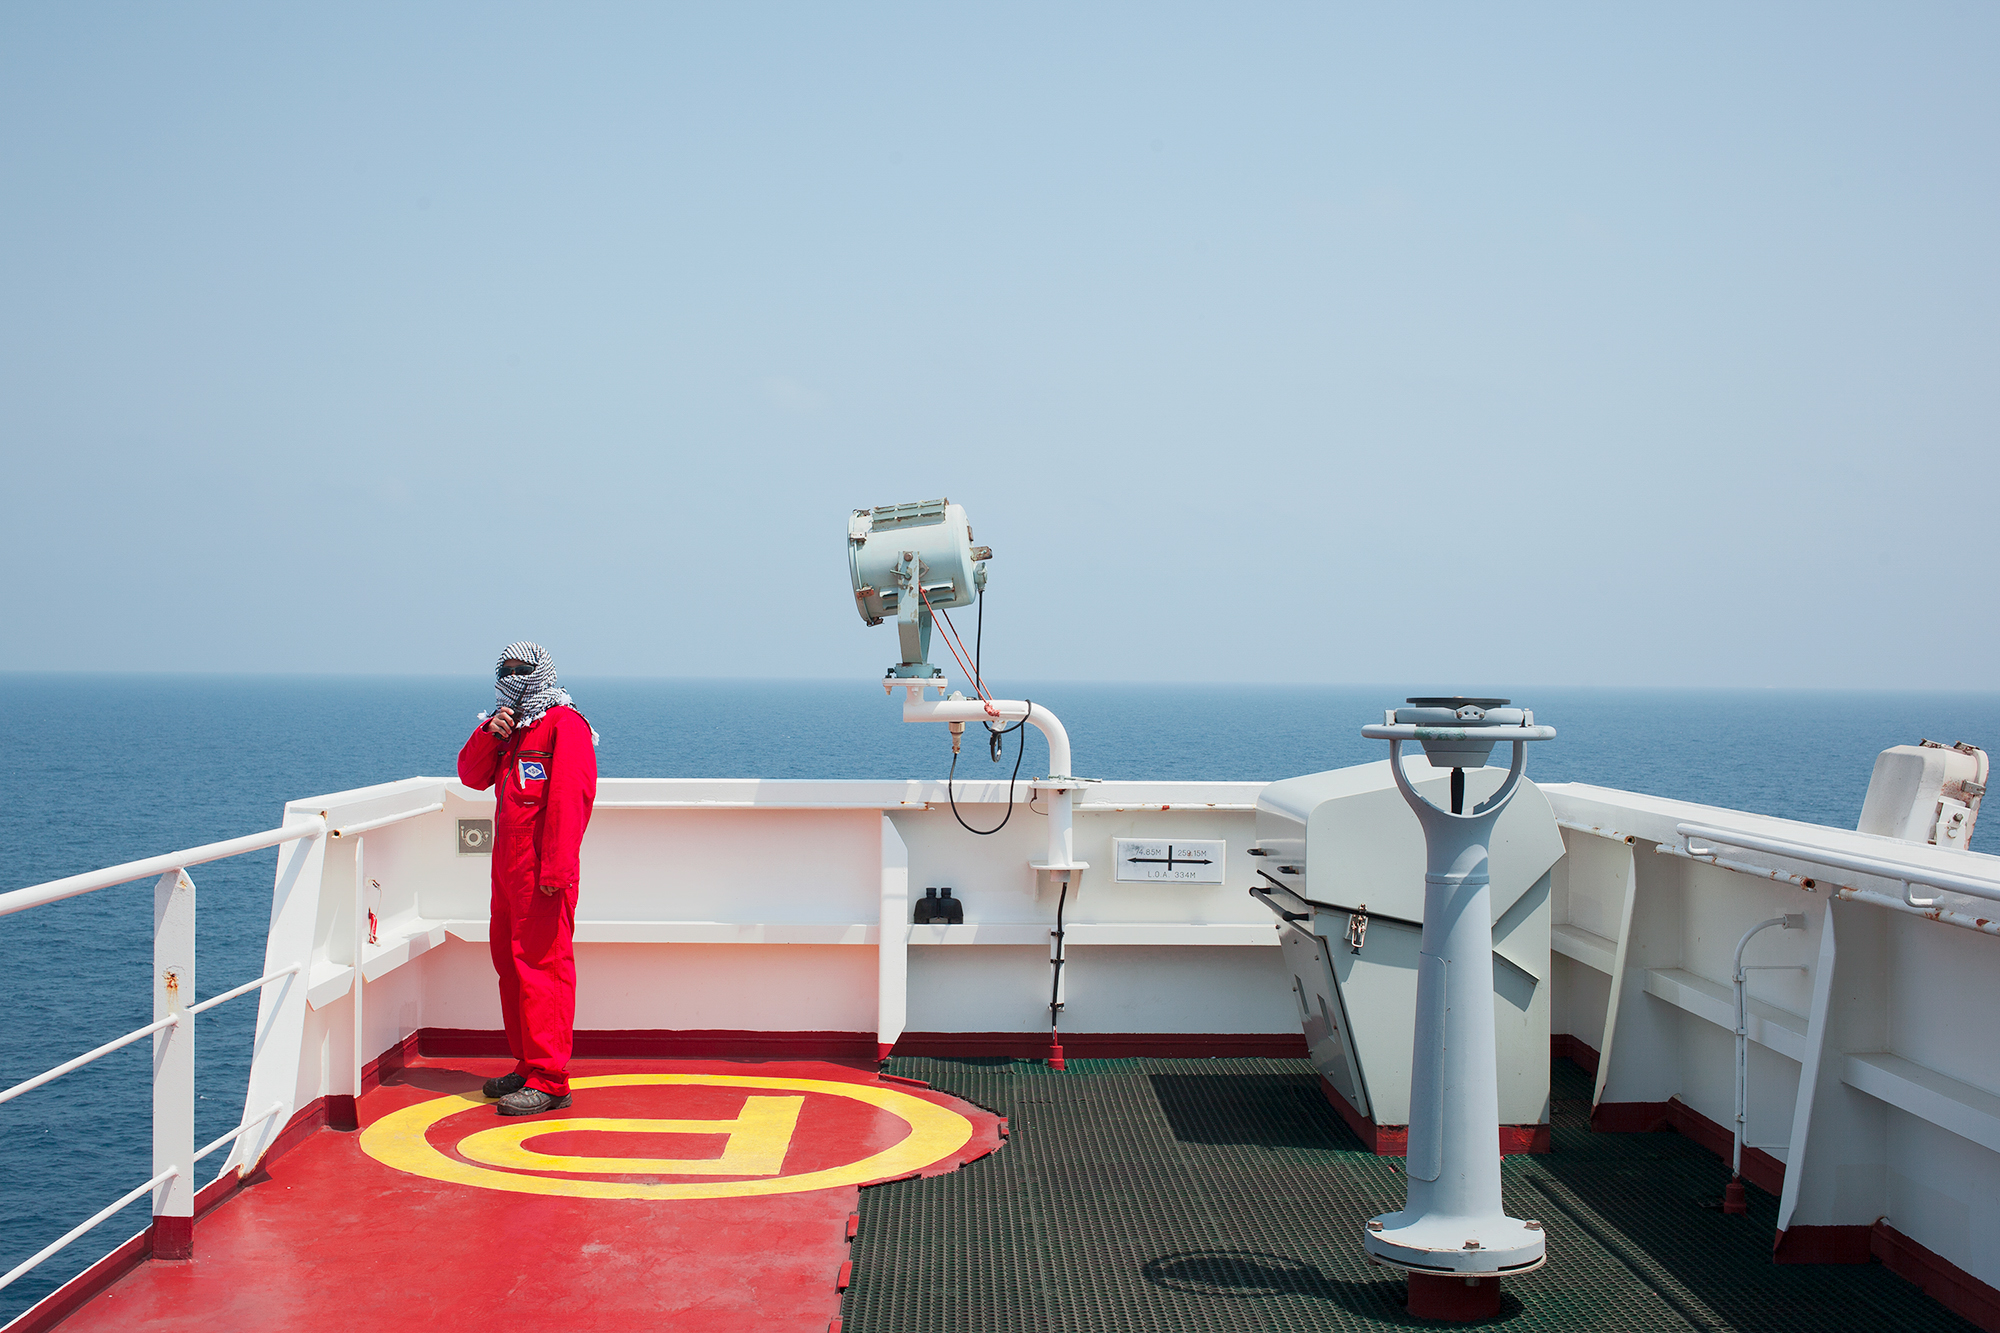 An employee on security watch aboard a Chinese-manufactured vessel, the Gulf of Aden, 2017.